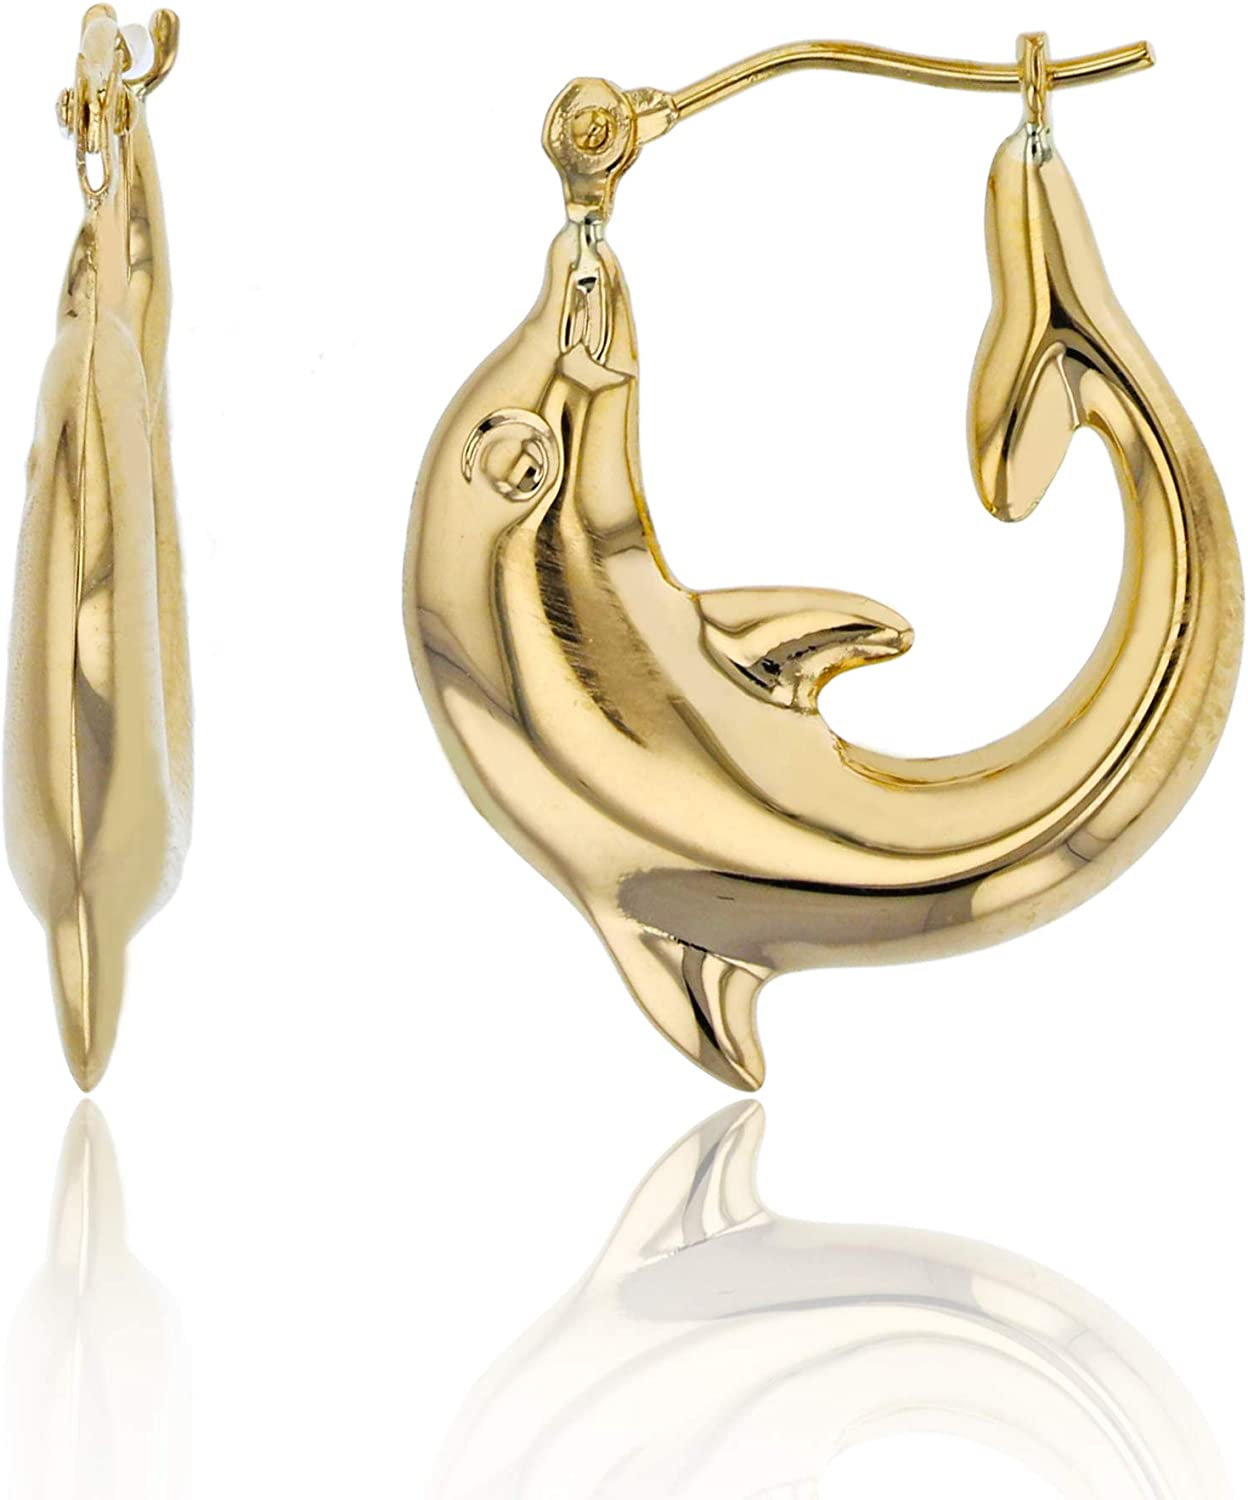 10K Yellow Gold 20x3mm High Dedication Factory outlet Polished Shaped Earring Hoop Dolphin